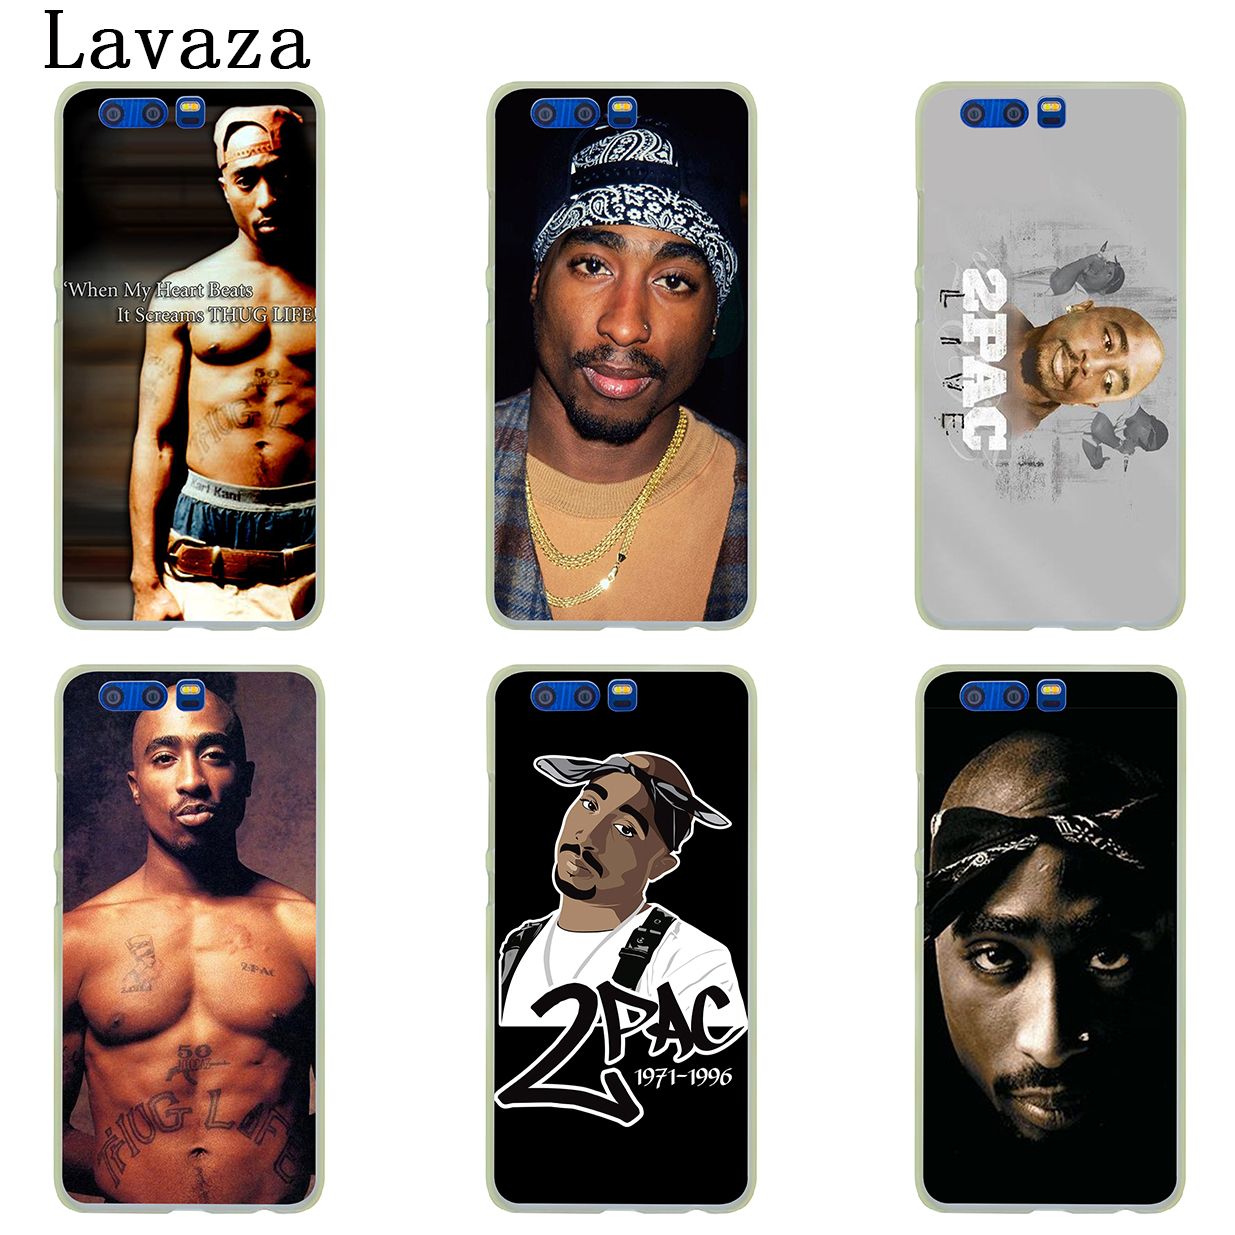 US $1 99 22% OFF|Lavaza 2Pac Tupac Amaru Shakur Hard Case for Huawei Y7 Y6  Prime Y5 Y9 2018 2017 Honor play 10 8 8C 8X 9 Lite 7C 7X 7A Pro Cover-in